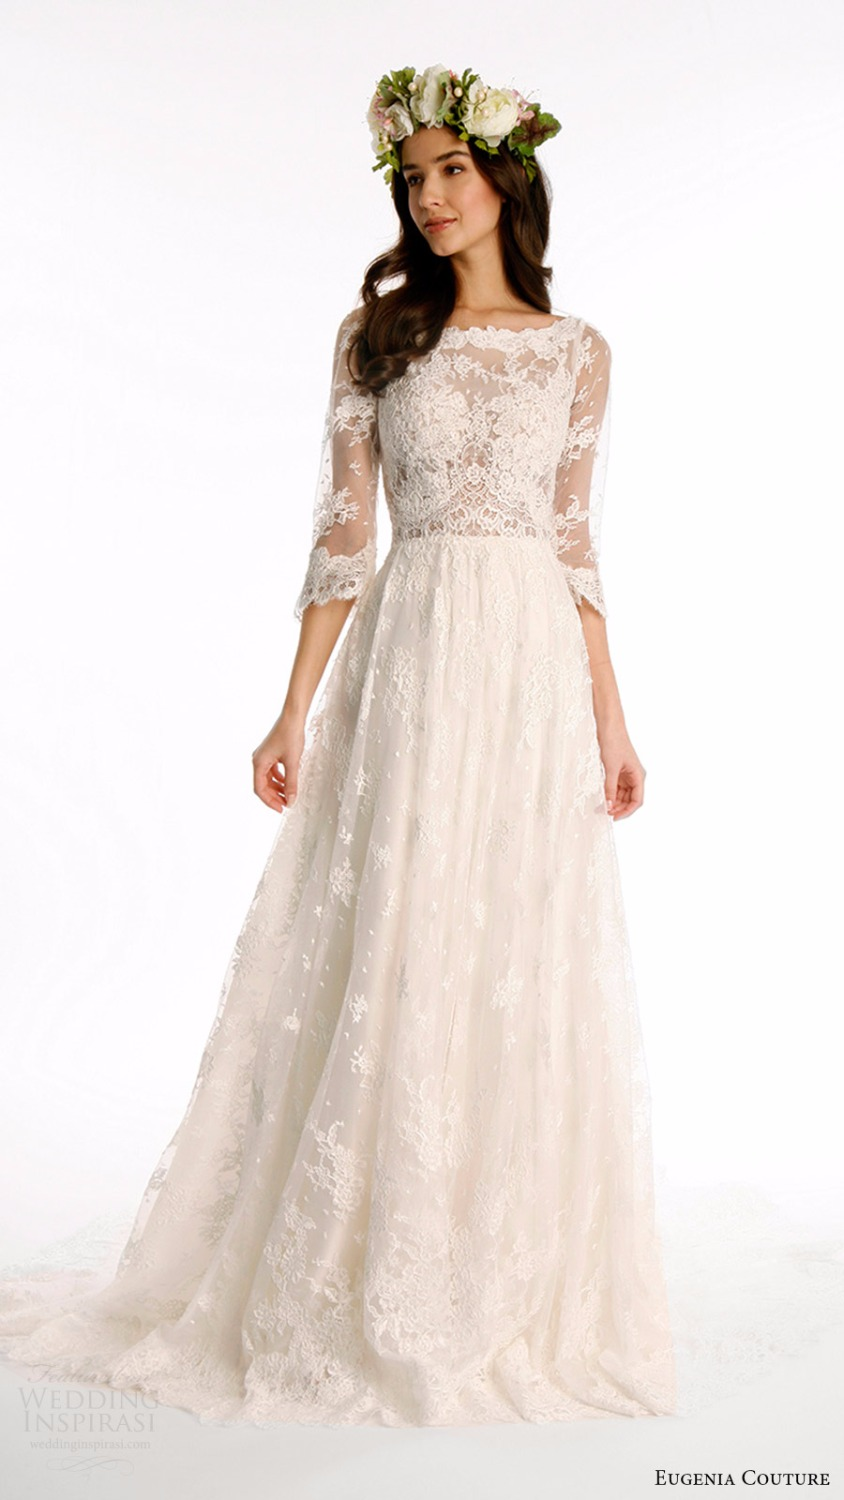 High quality lace bohemian wedding dresses 2017 3 4 for Wedding dresses with sleeves 2017